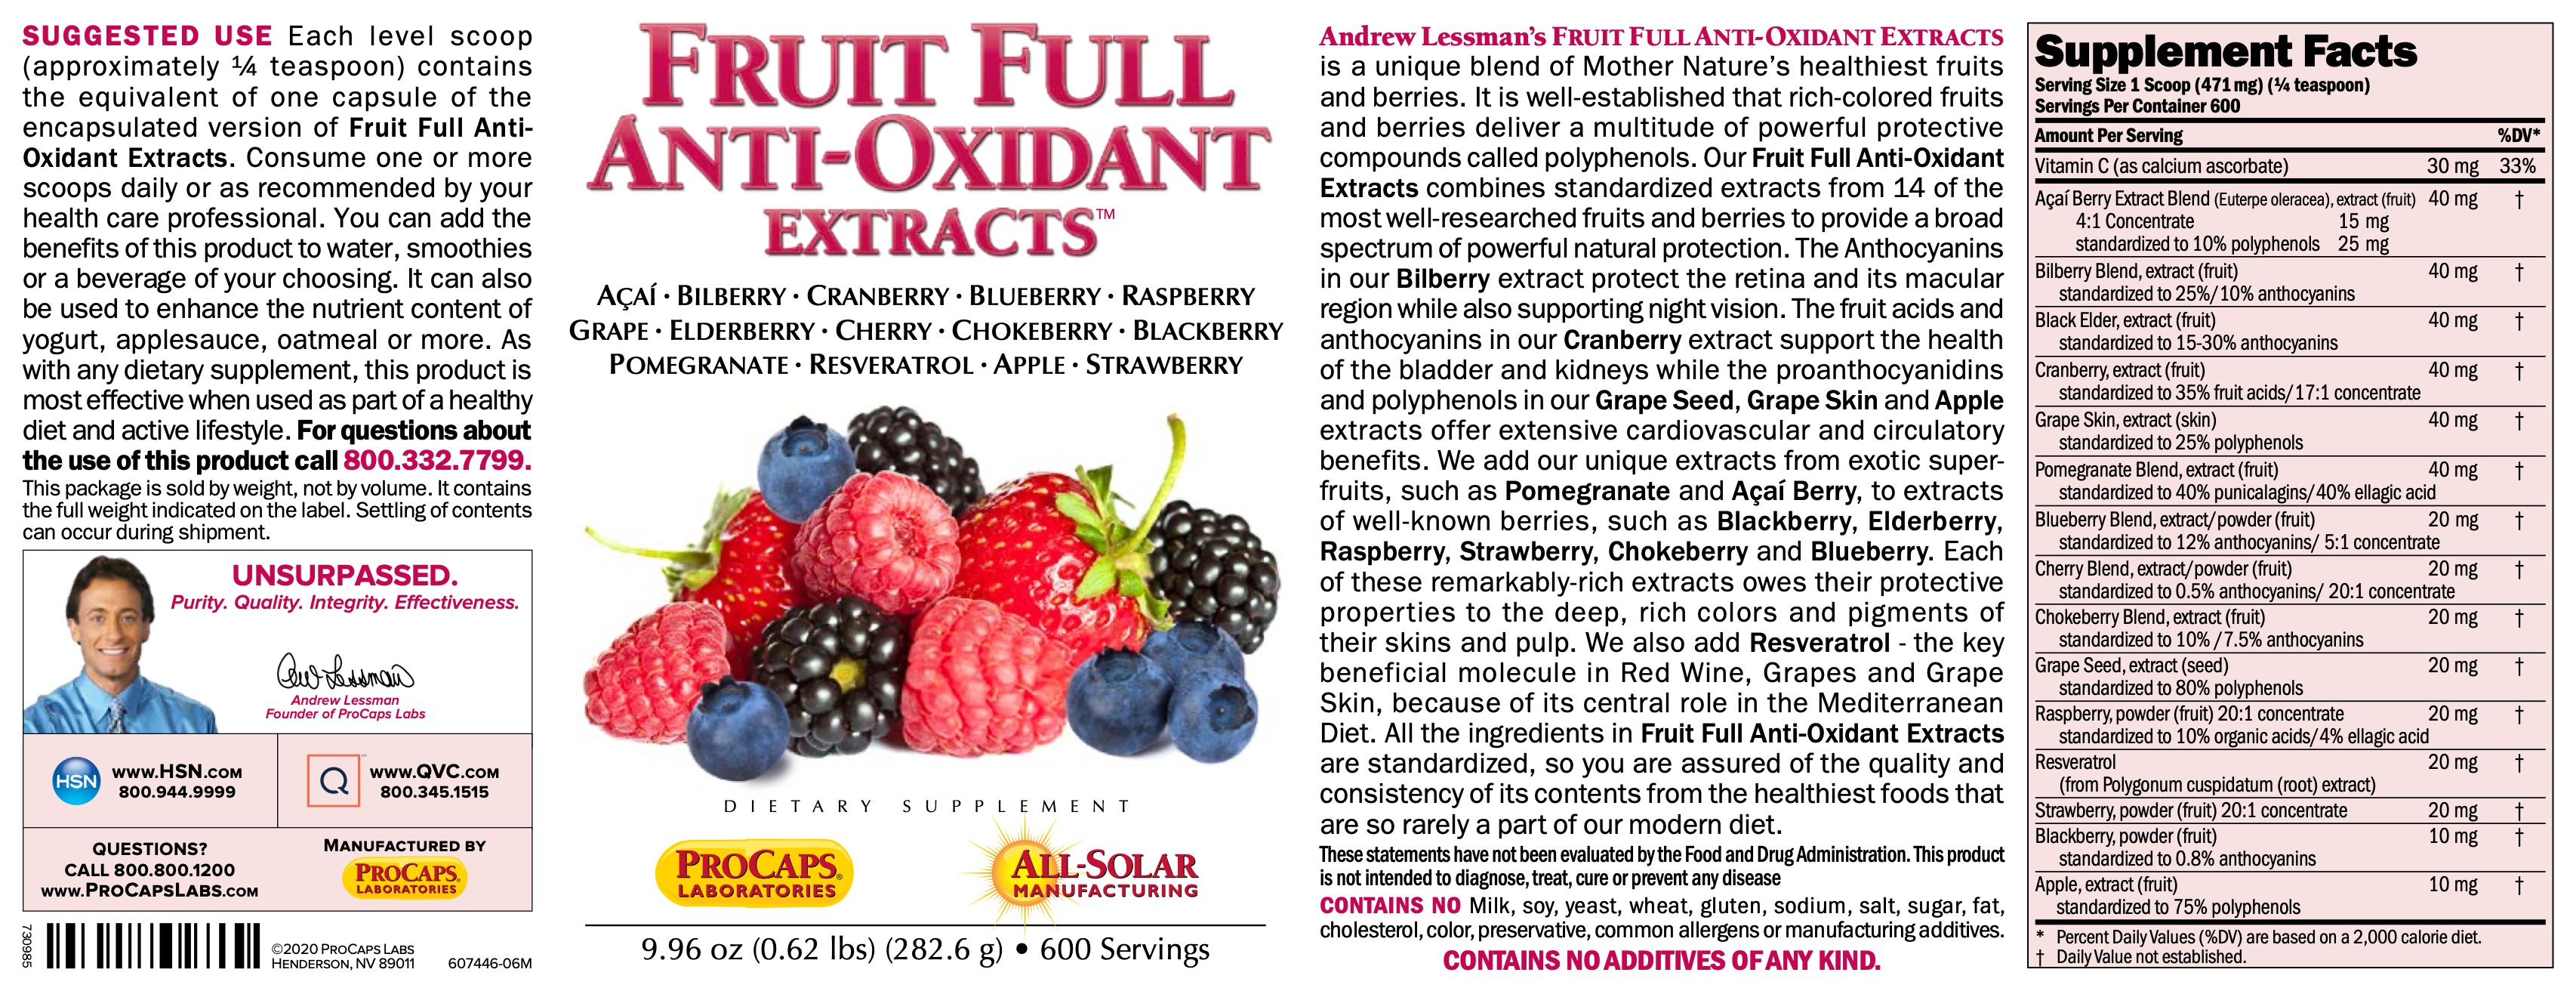 Fruit-Full-Anti-Oxidant-Extracts-Powder-Anti-oxidants